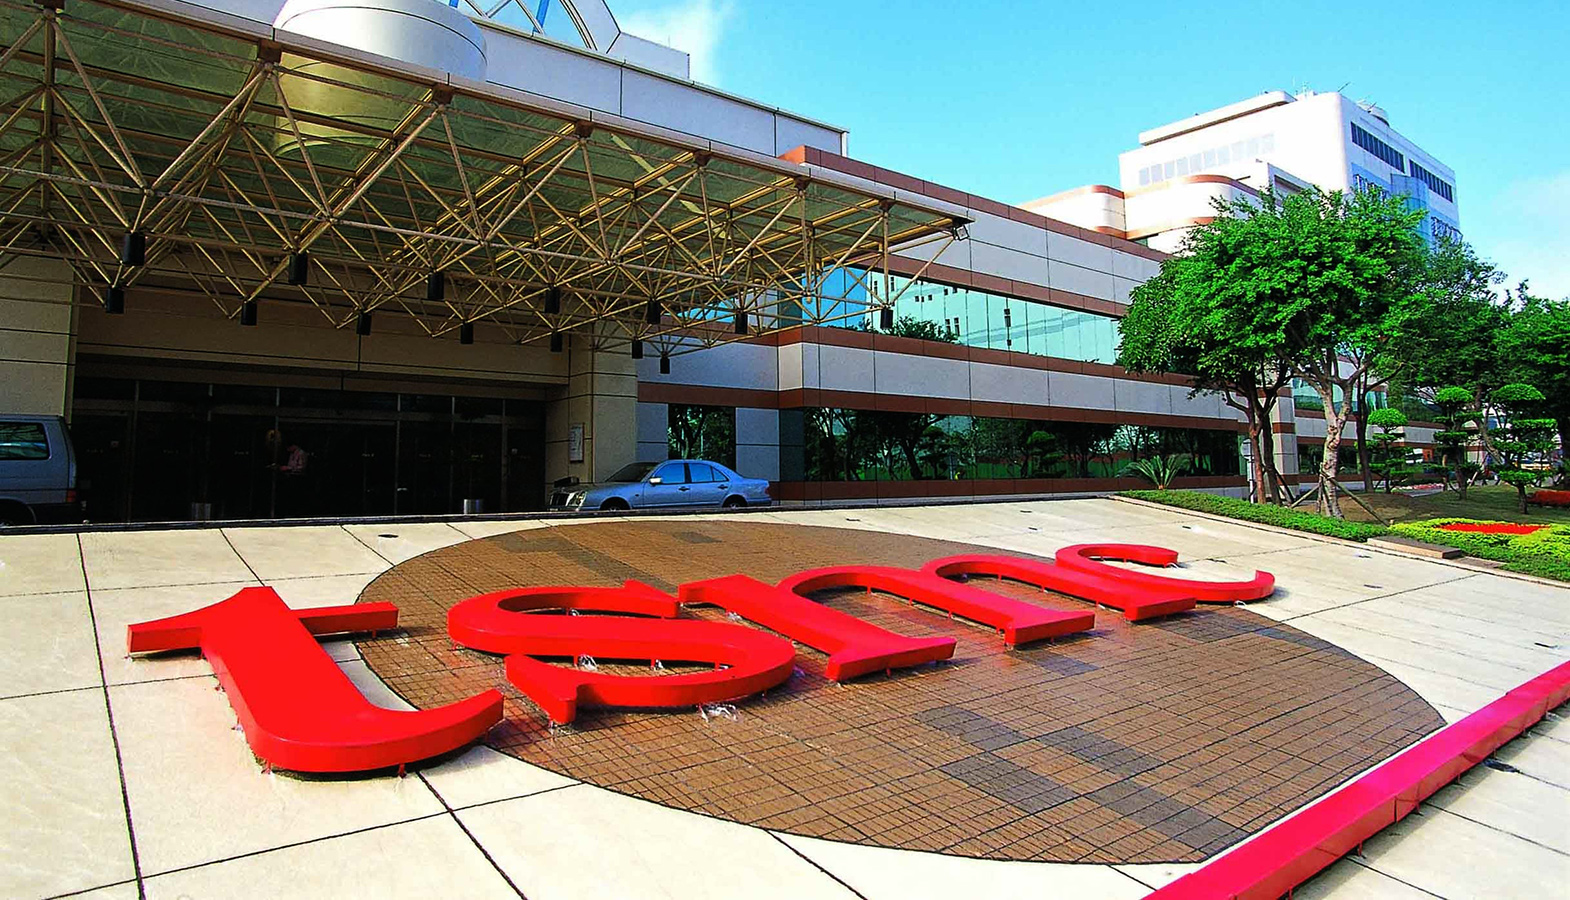 Intel Is No Longer The Leader. TSMC Became The World's Largest Processor Manufacturer